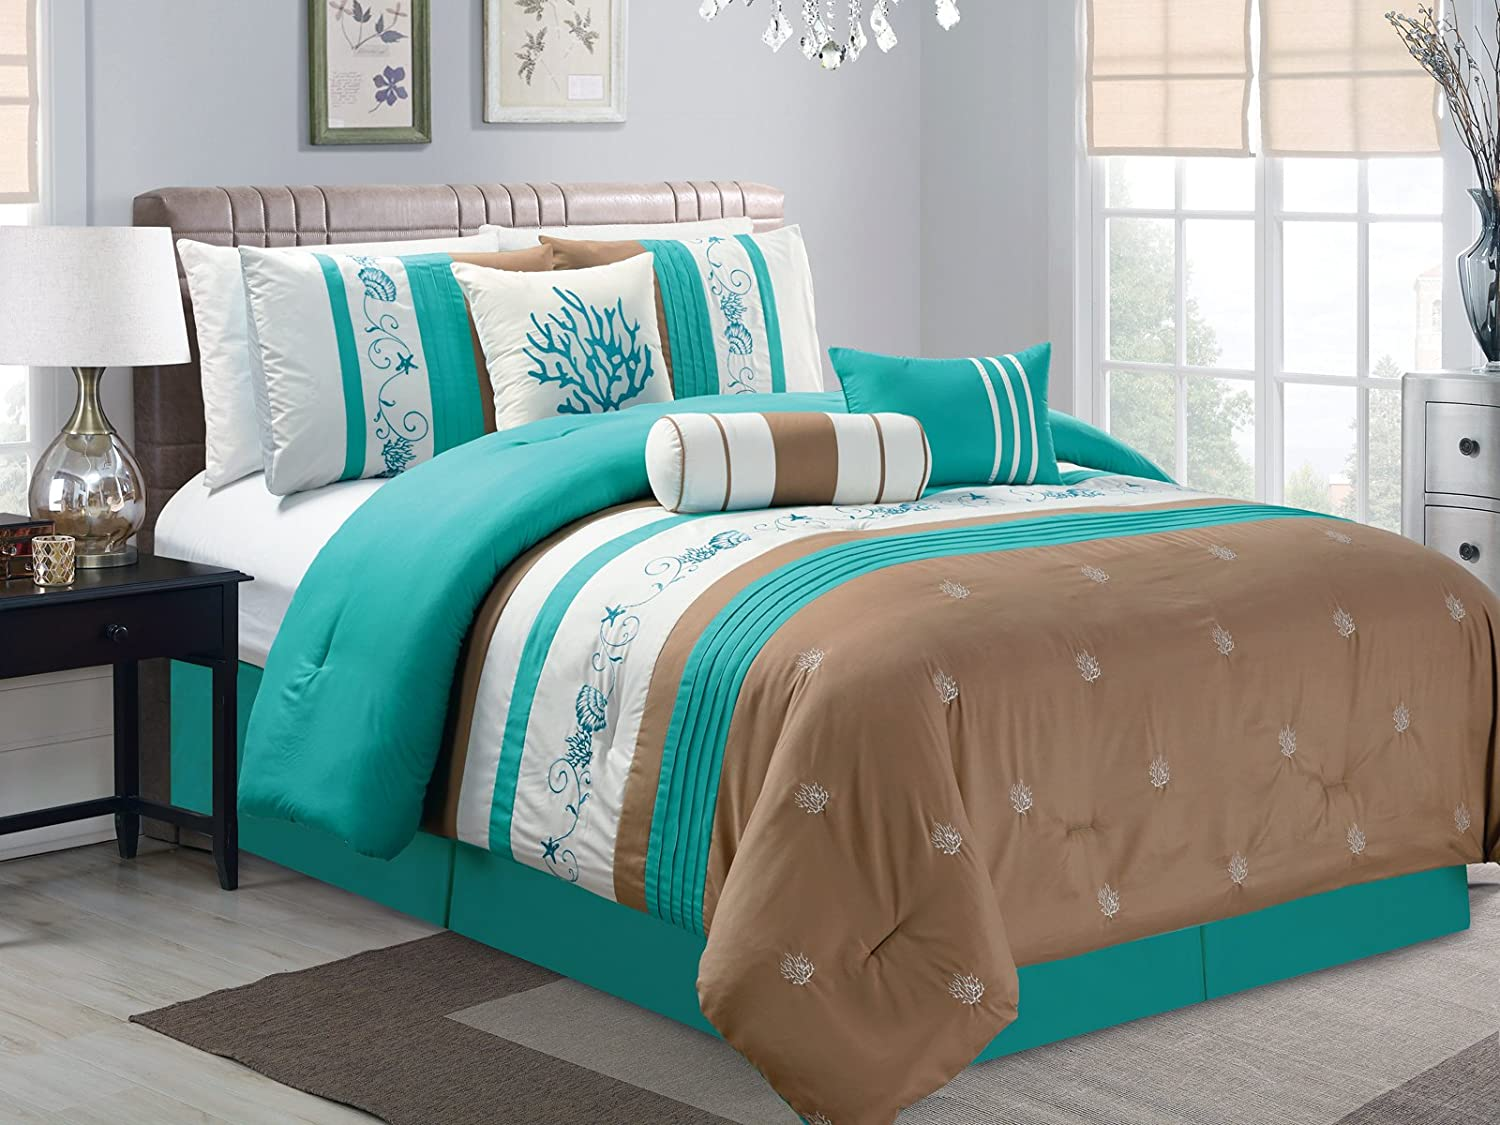 comforter products lifestyle chelsea waves new save victoria ocean